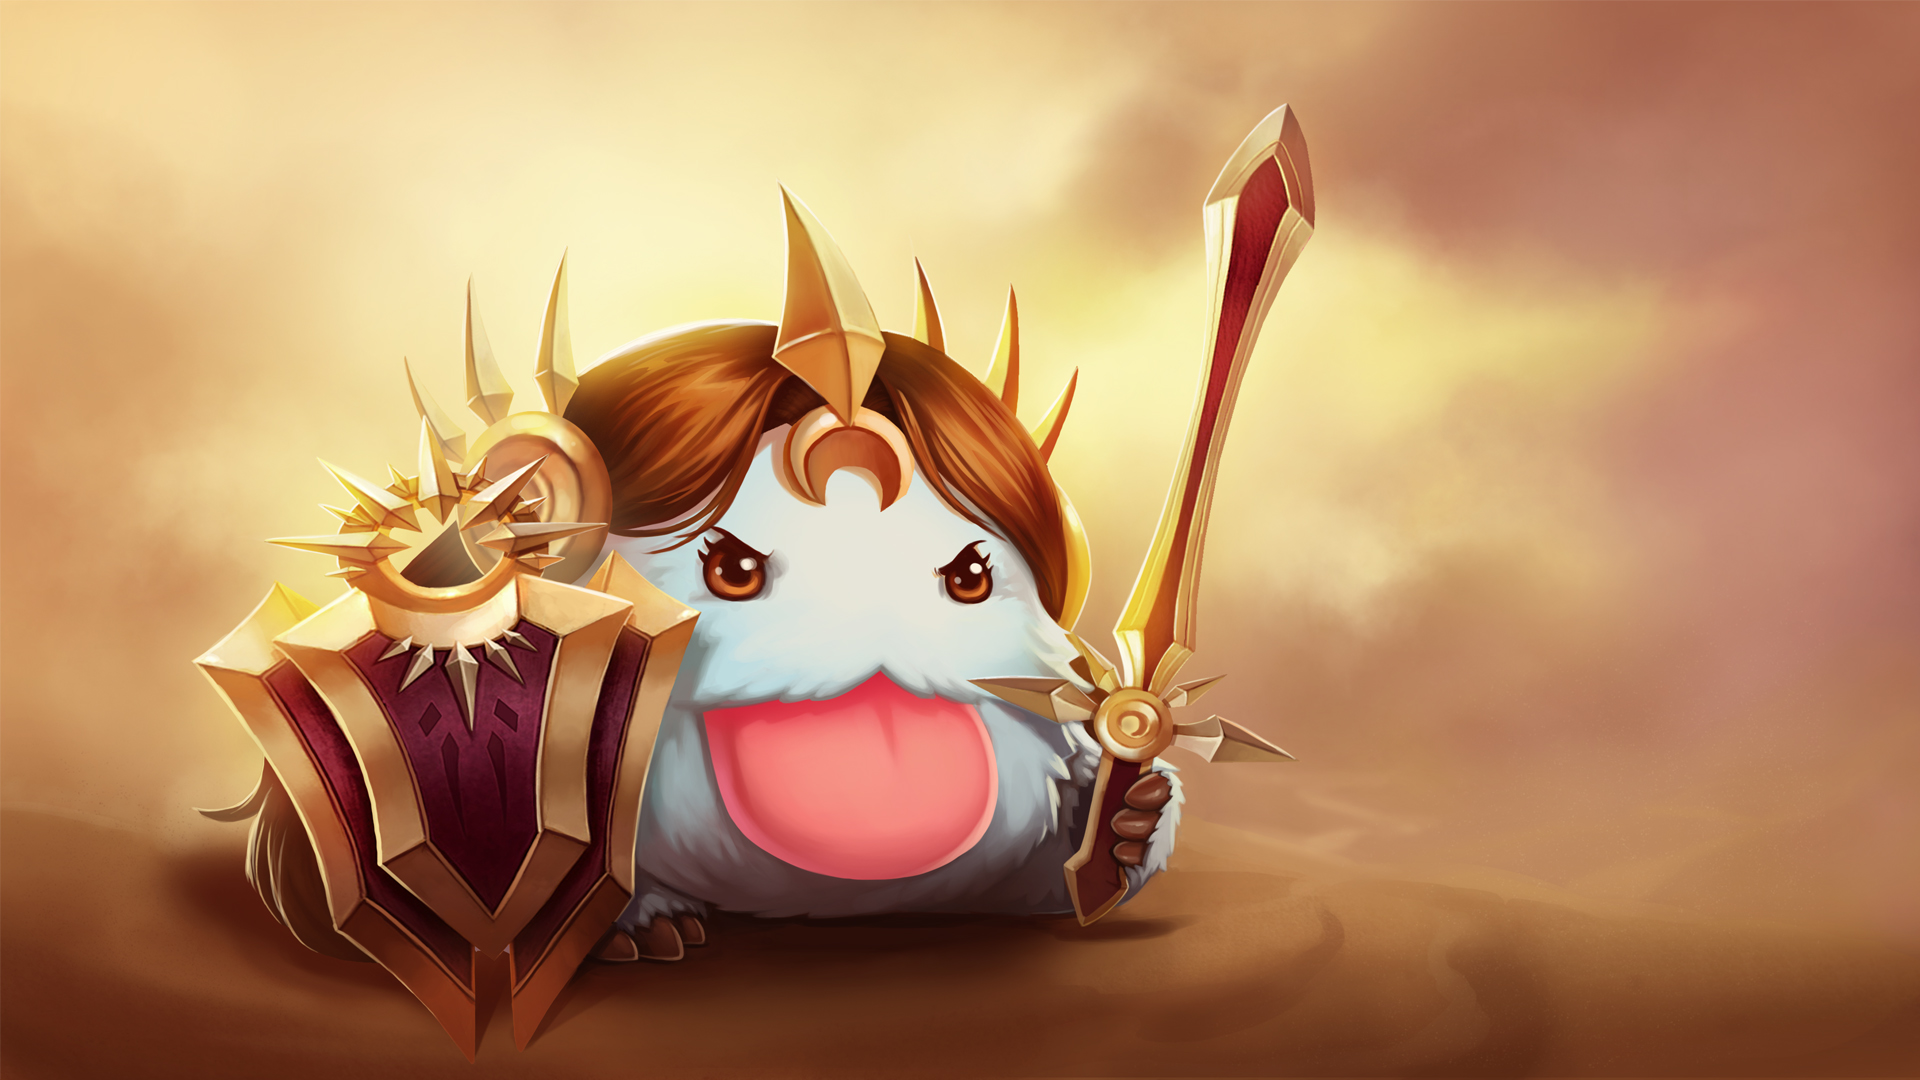 Leona Poro wallpaper